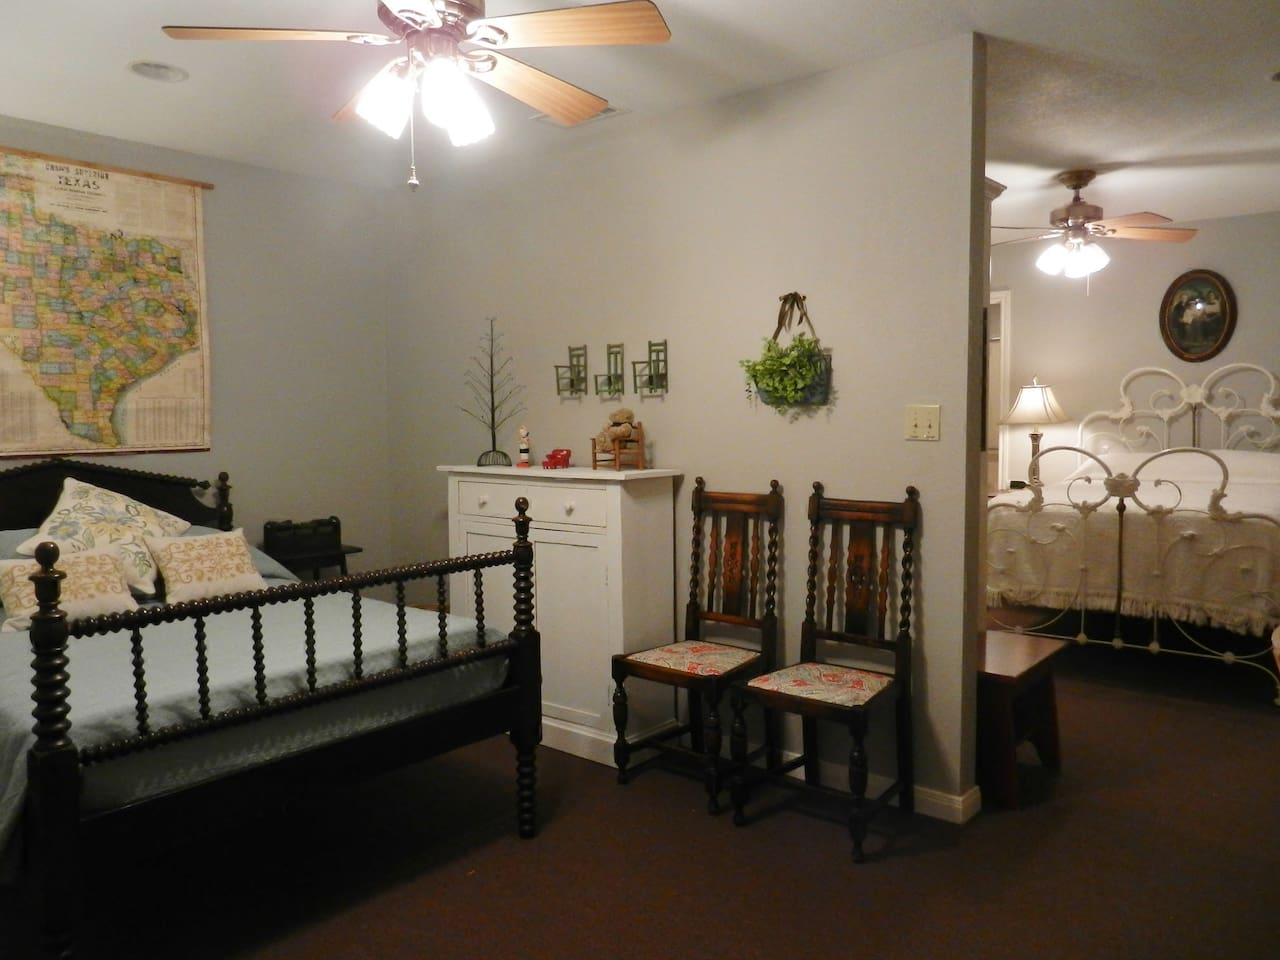 The two bedrooms downstairs are separated by only a wall.  The bedrooms and living area is separated by a door.